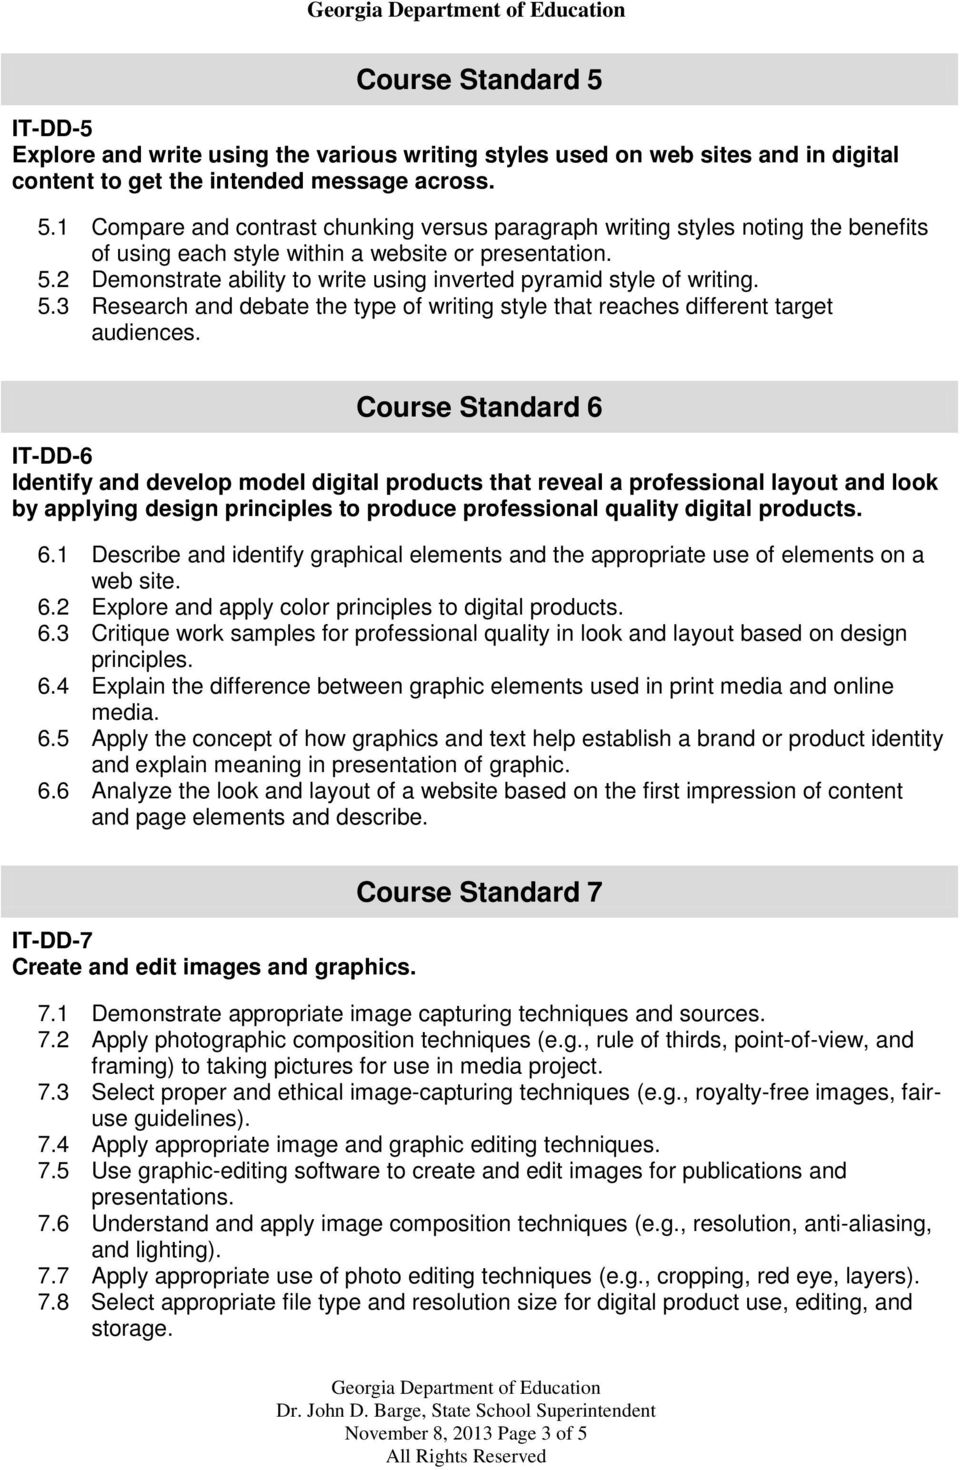 Course Standard 6 IT-DD-6 Identify and develop model digital products that reveal a professional layout and look by applying design principles to produce professional quality digital products. 6.1 Describe and identify graphical elements and the appropriate use of elements on a web site.